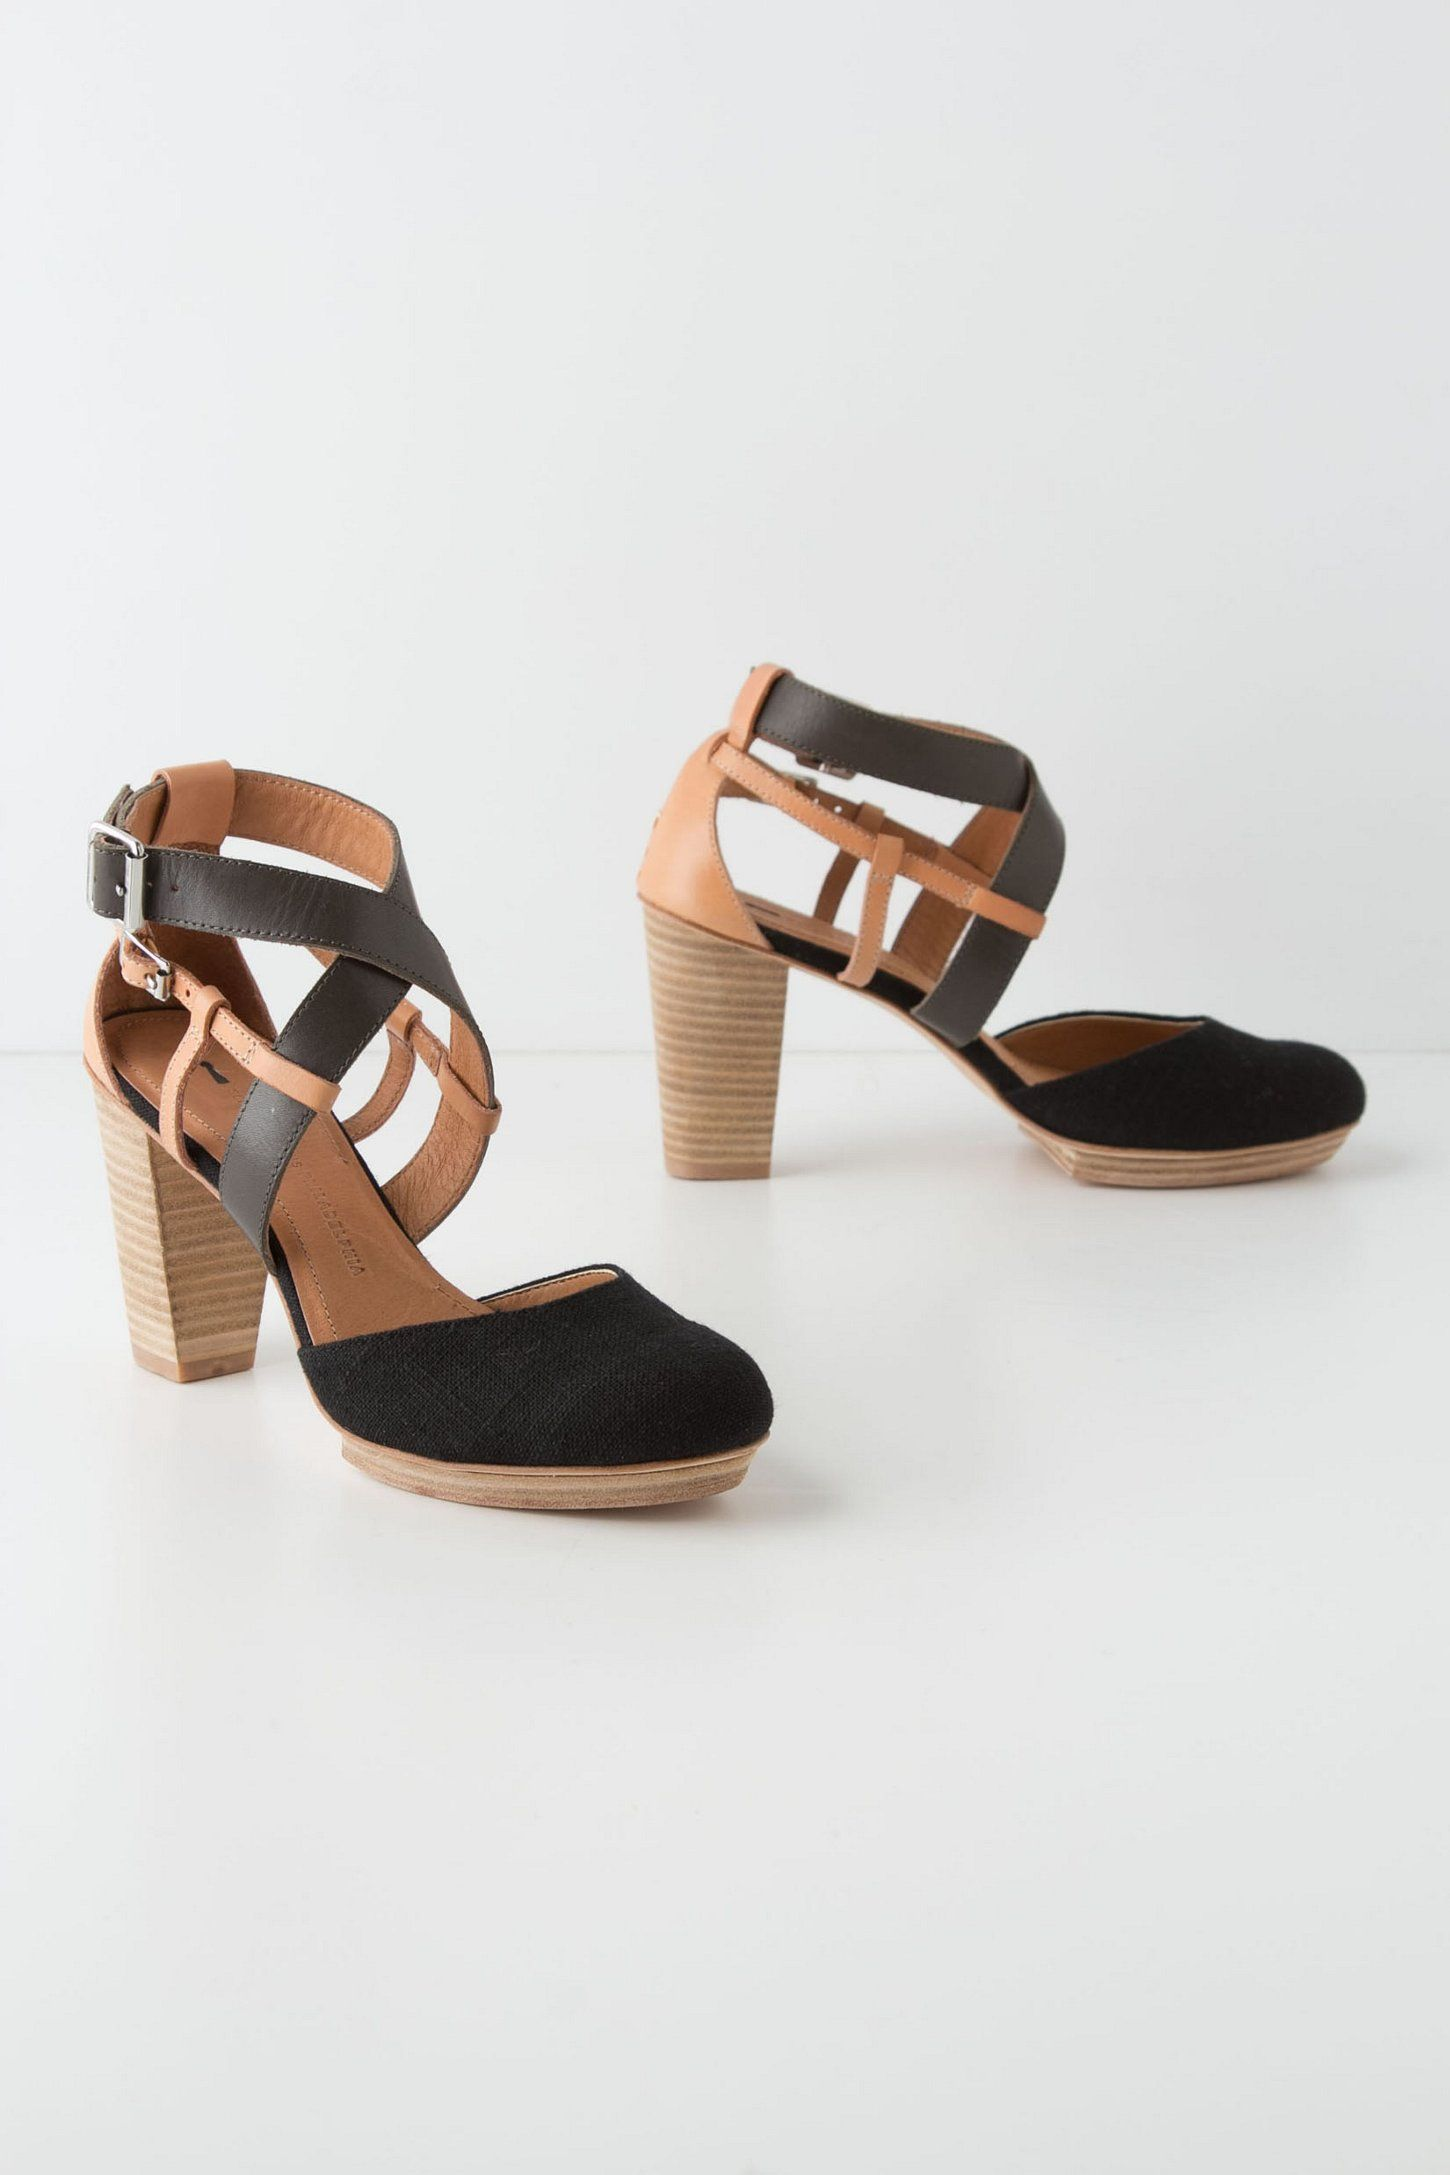 d1349a4cab4 Nalo Heels   Schuler   Sons via Anthropologie